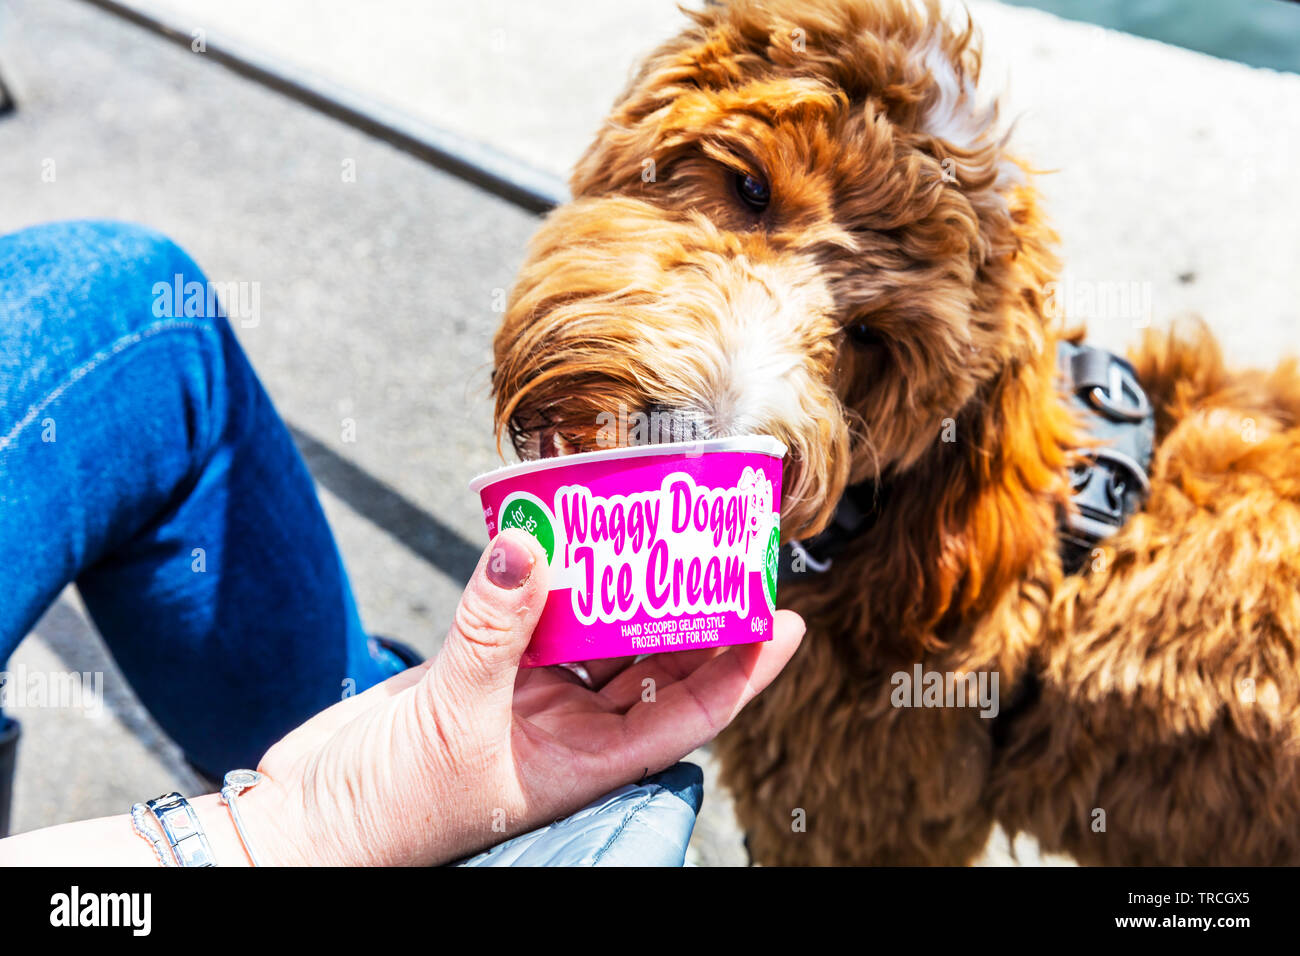 ea47170e8e Dog eating ice cream, doggy ice cream, dog ice cream, ice cream for